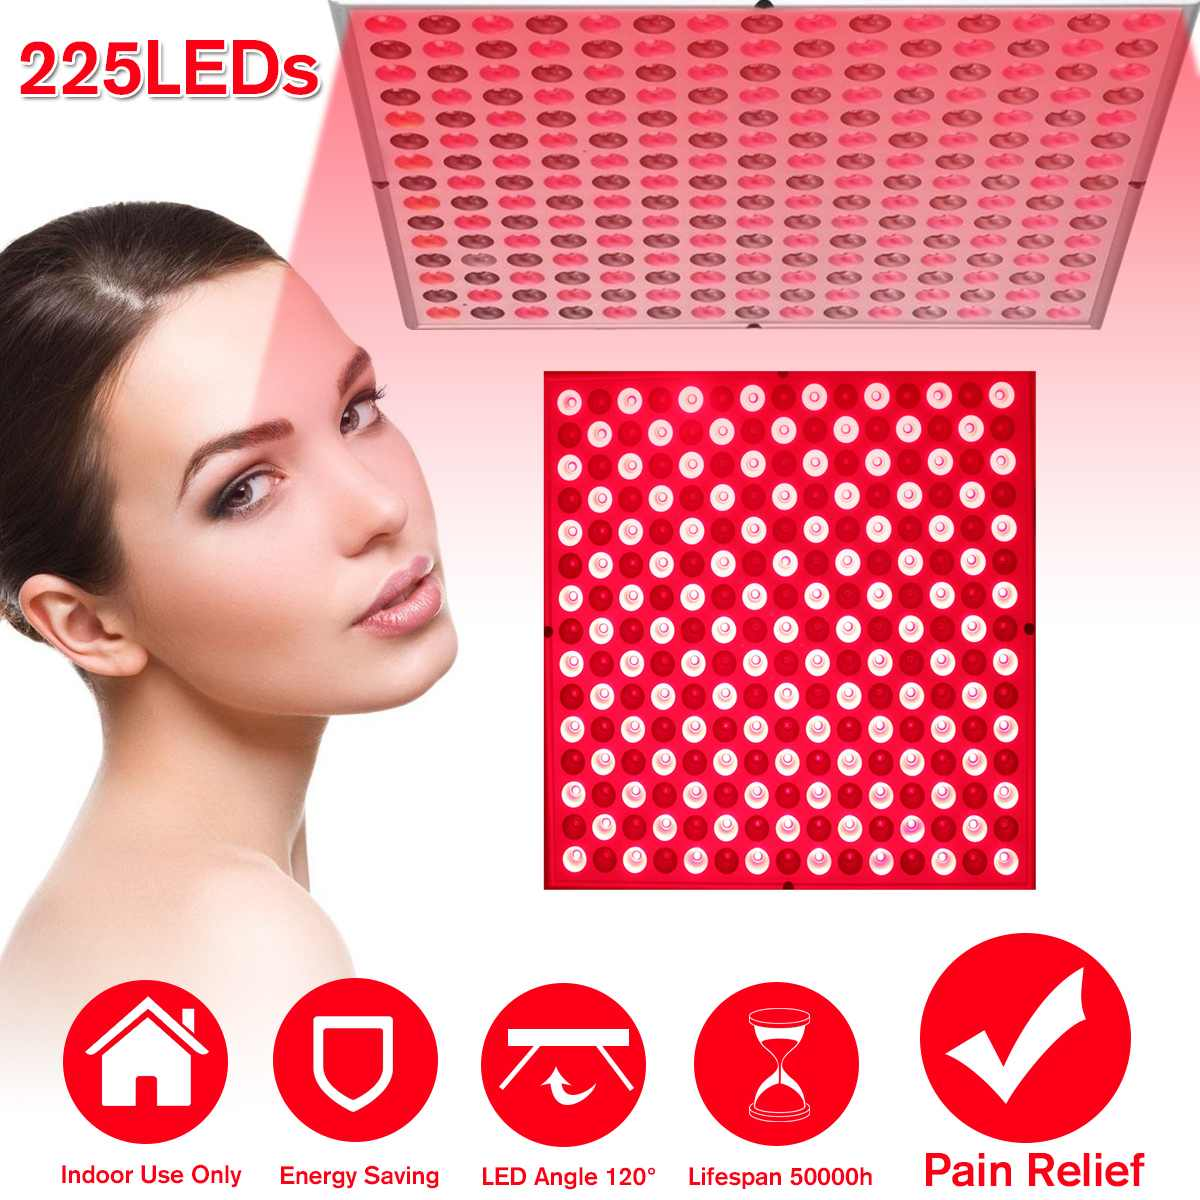 Anti Aging 45W Red Led Light Therapy Deep Red 660nm And Near Infrared 850nm Led Light For Full Body Skin And Pain Relie